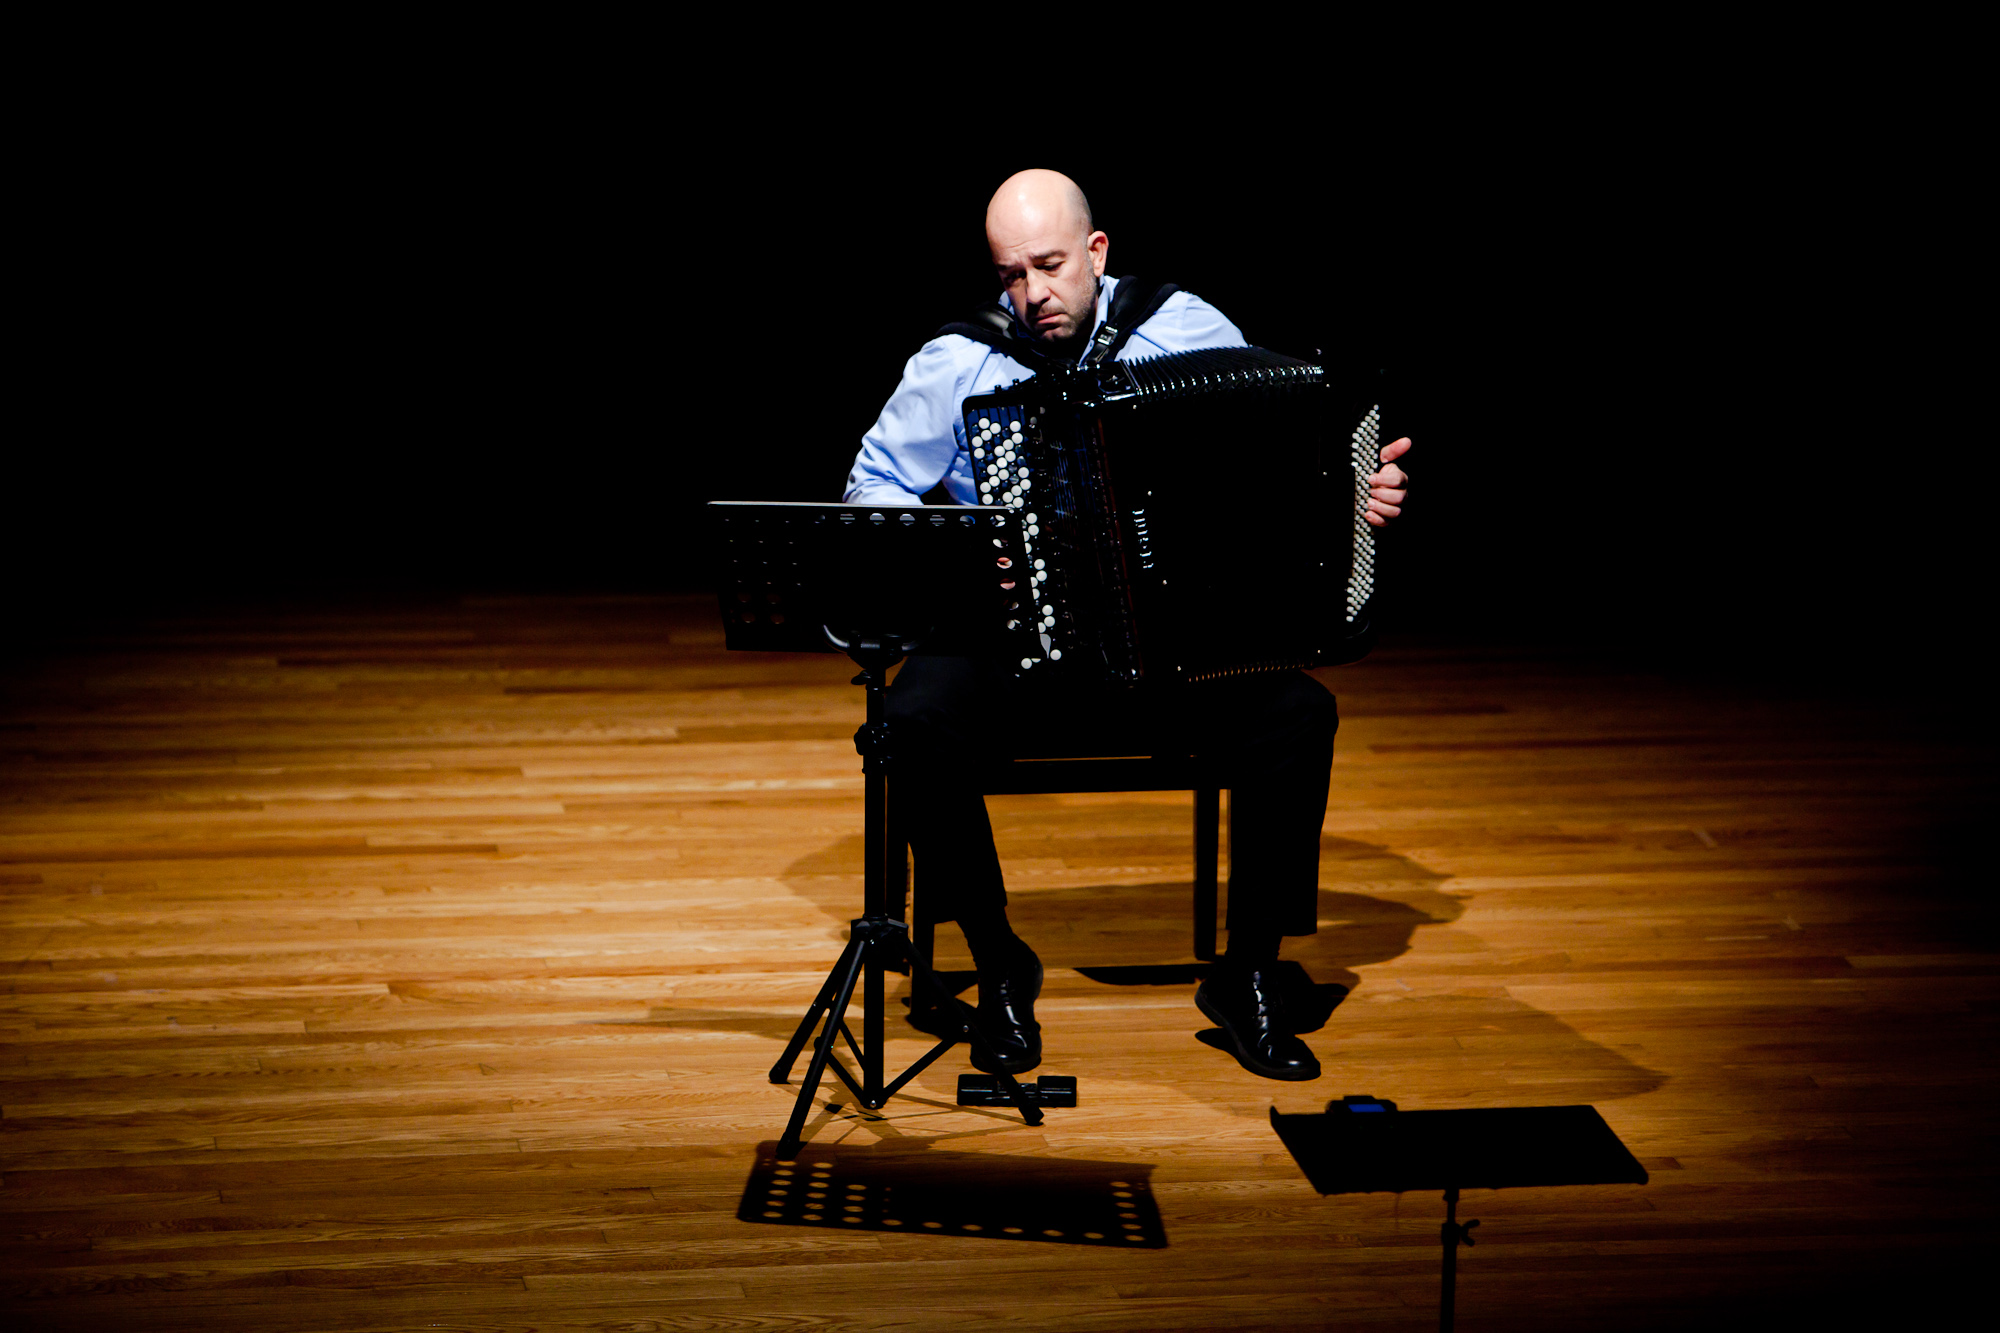 Concert I 2019 - Solo Accordion